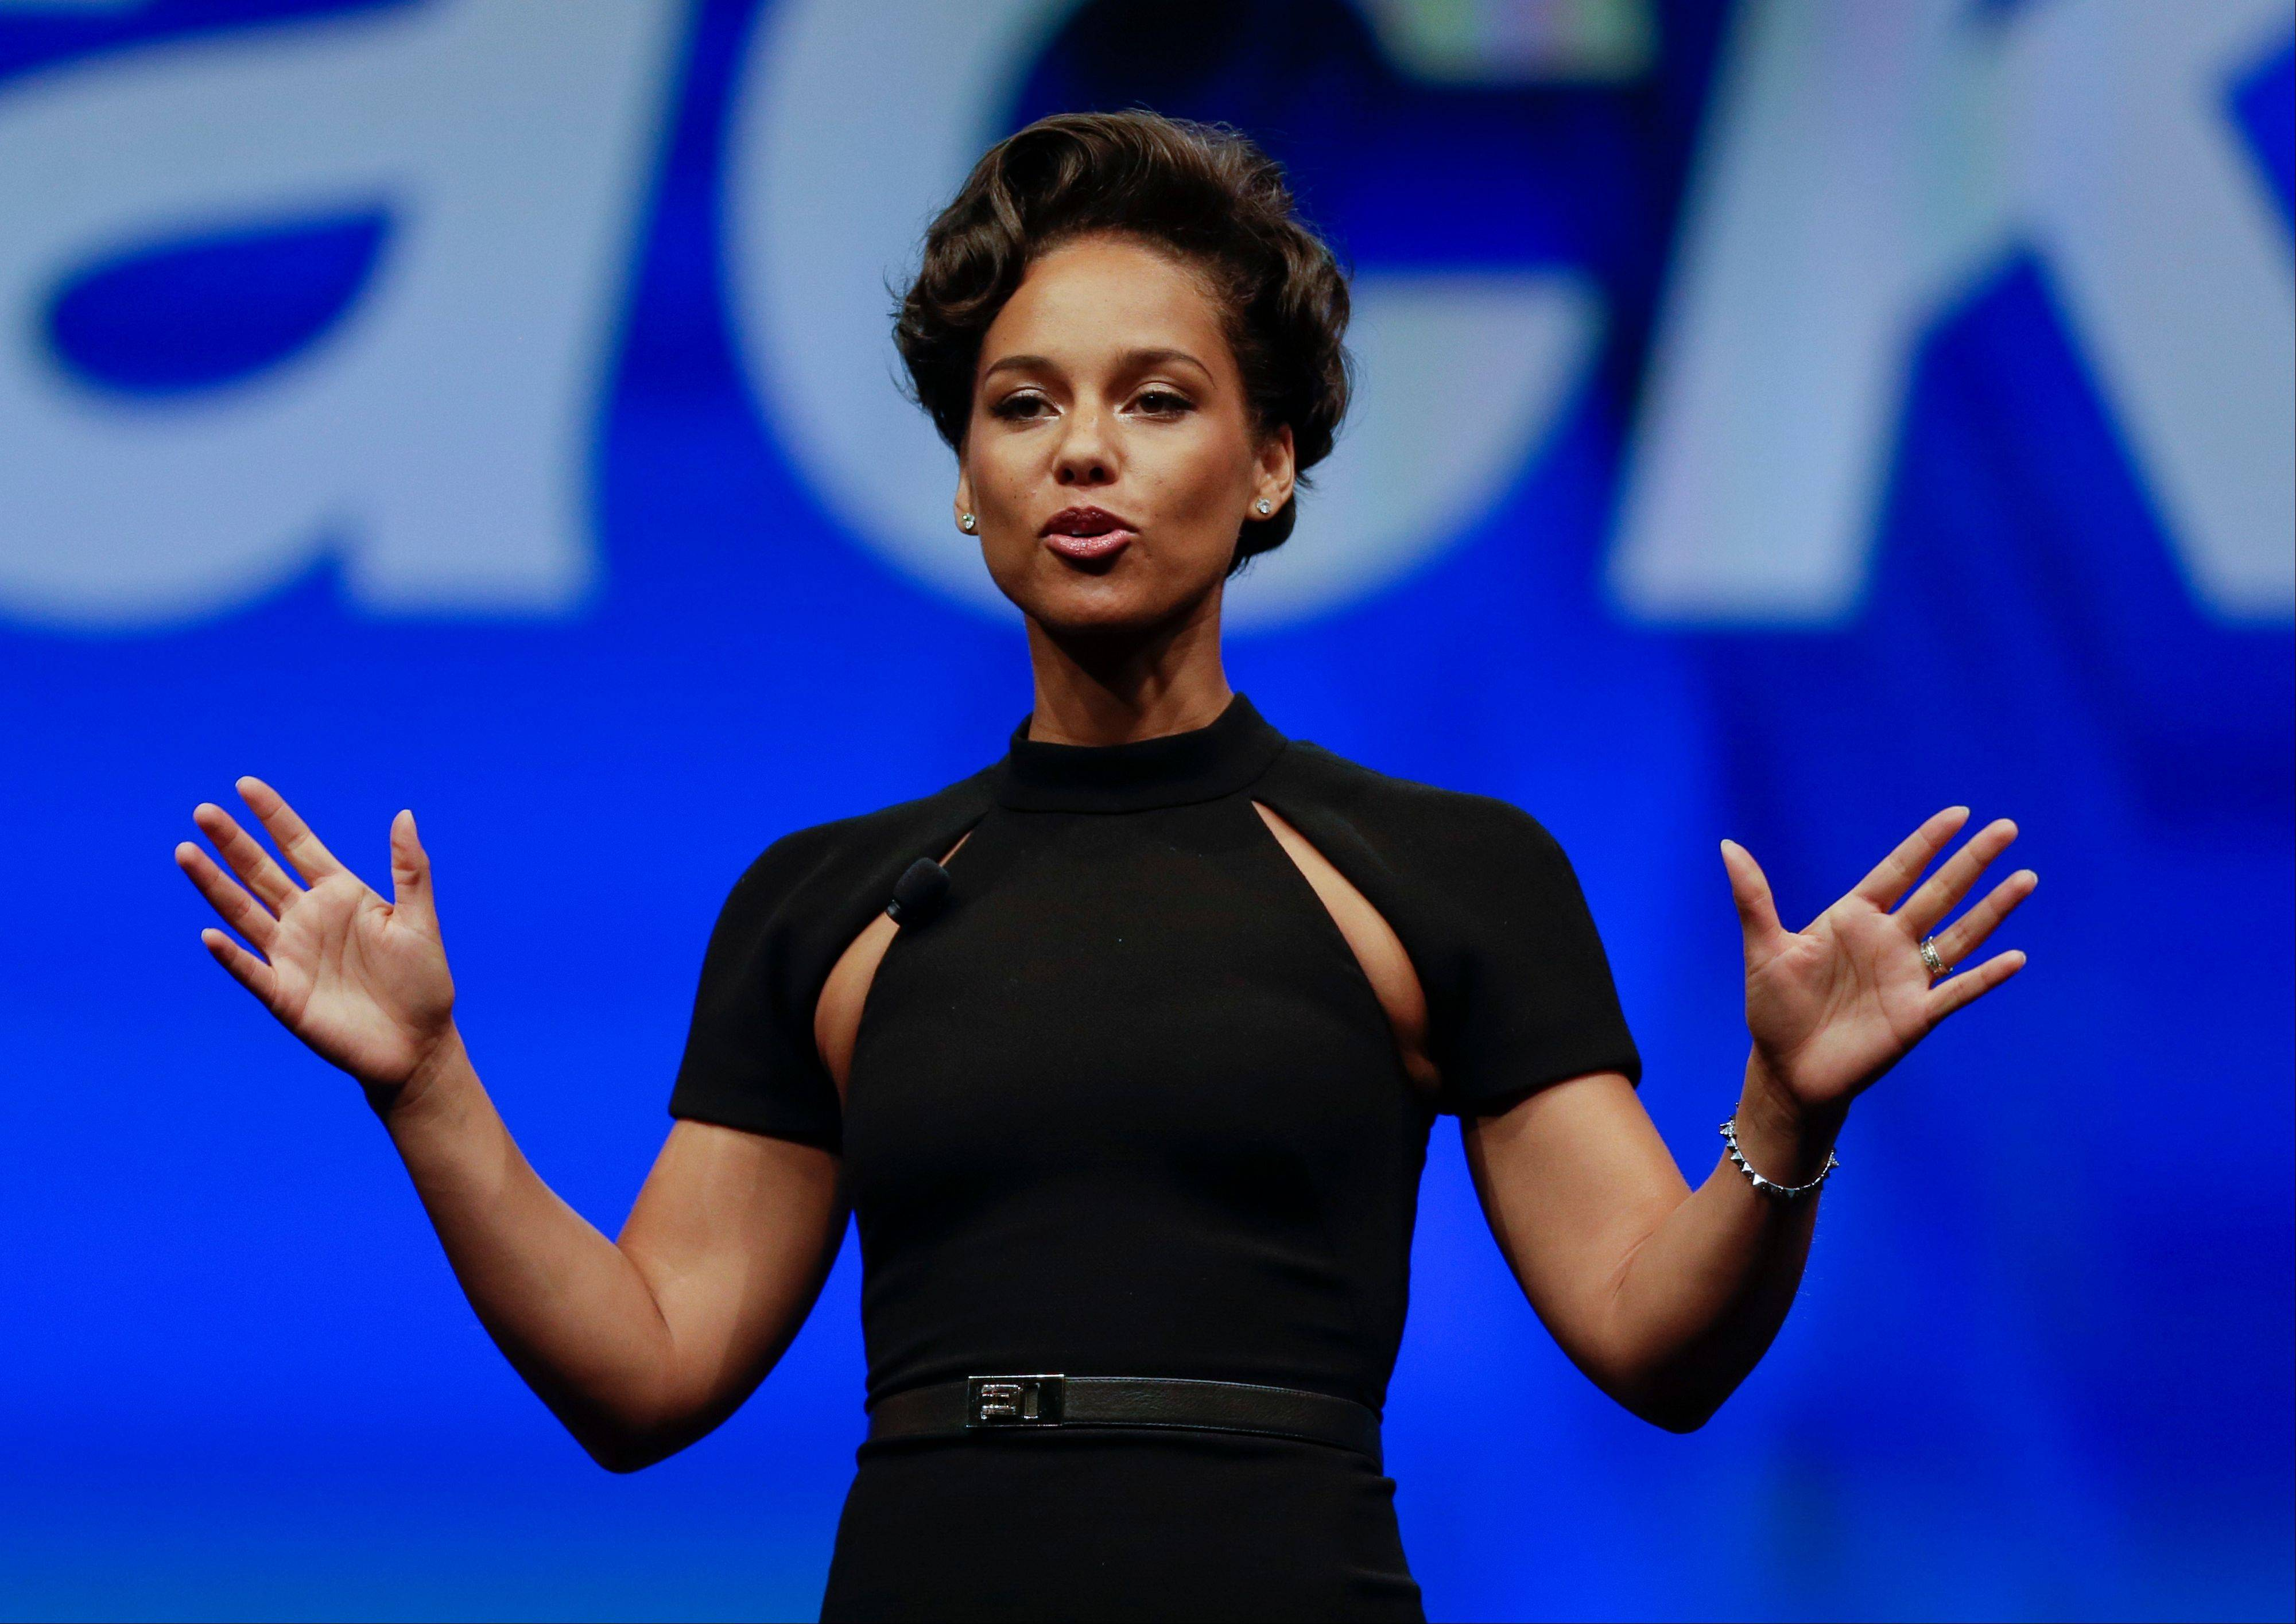 Entertainer Alicia Keys, Global Creative Director for BlackBerry, speaks Tuesday at a conference in Orlando, Fla.